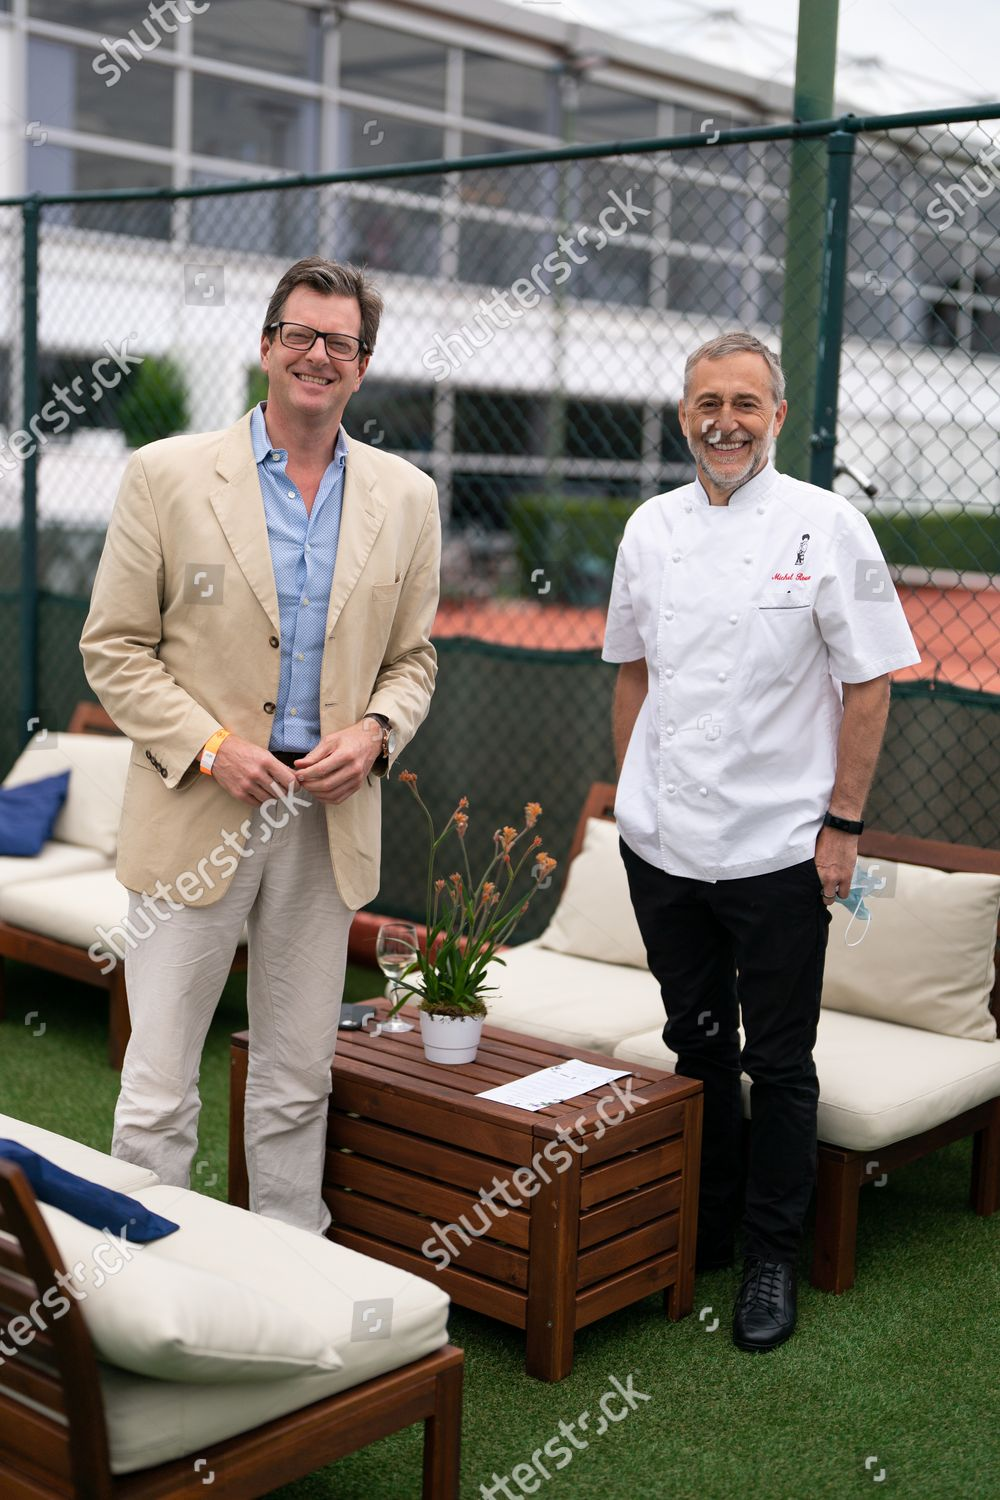 Stock photo of Carlo Carello hosts lunch at The Lawn with Keith Prowse, Wimbledon Championships, London, UK - 29 Jun 2021